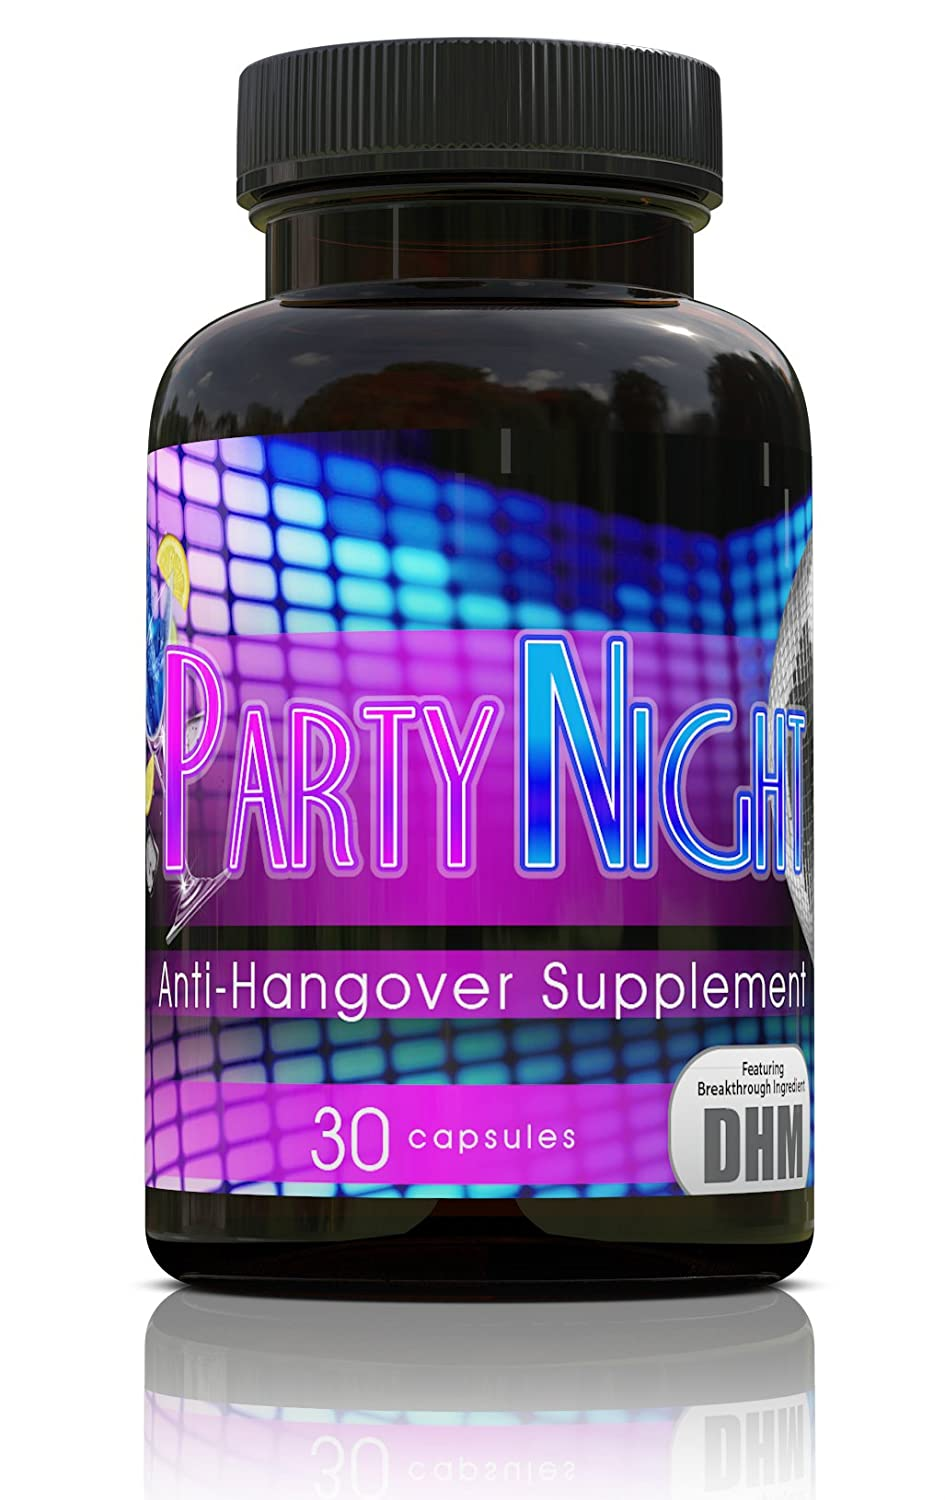 Party Night Anti-Hangover Supplement | 300mg Dihydromyricetin DHM | Your Best Solution to Live Without a Hangover! by Absorb Health